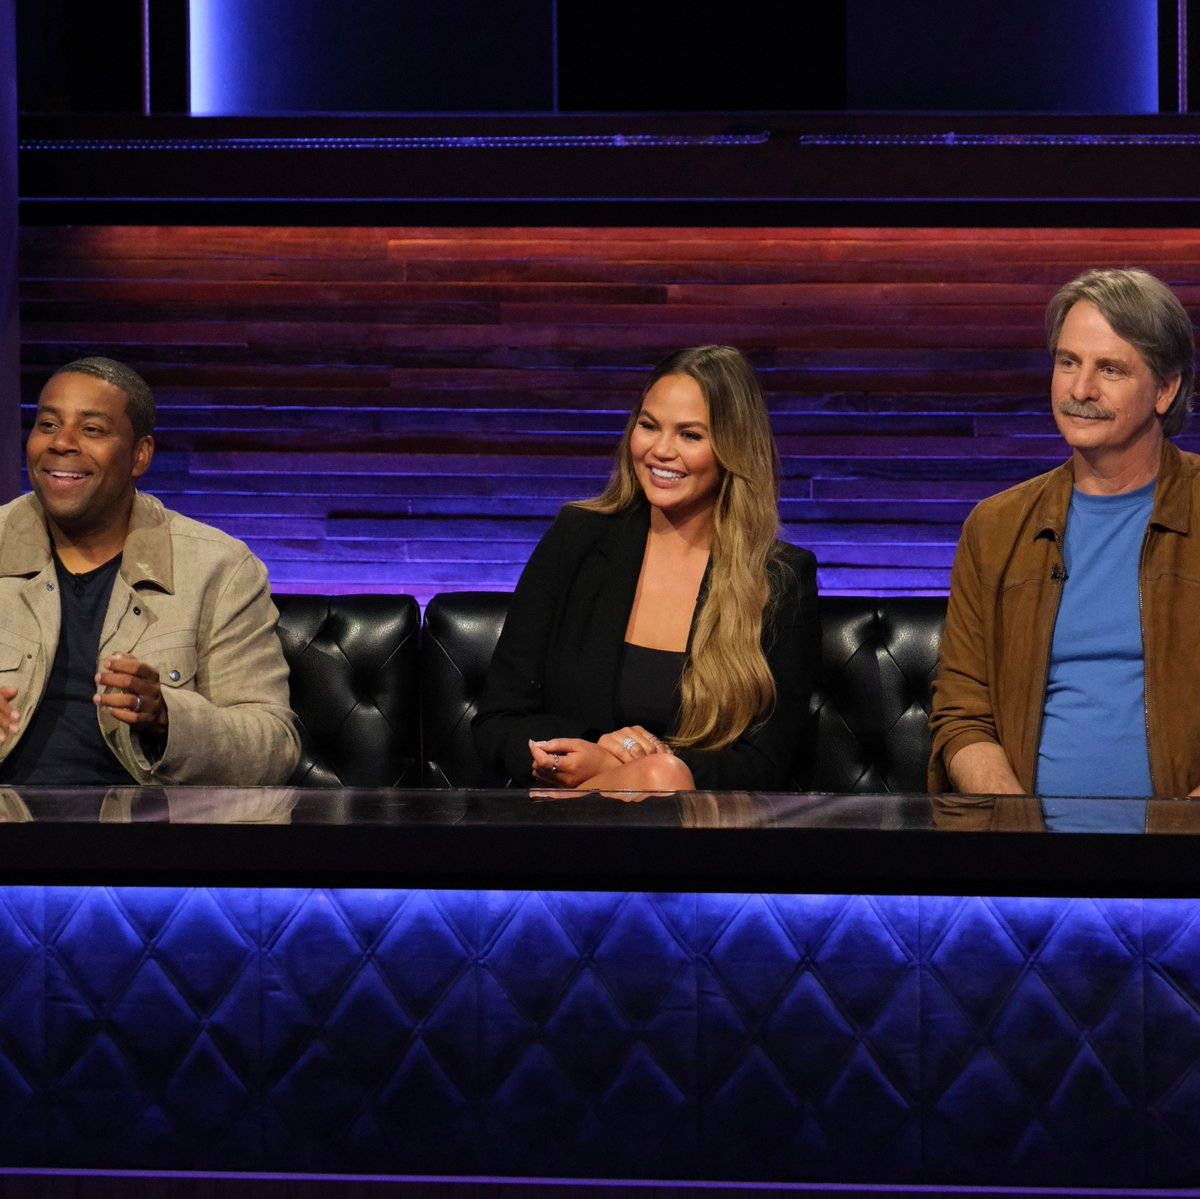 Give a warm welcome to #BringTheFunny's newest judge, Miles. 😍